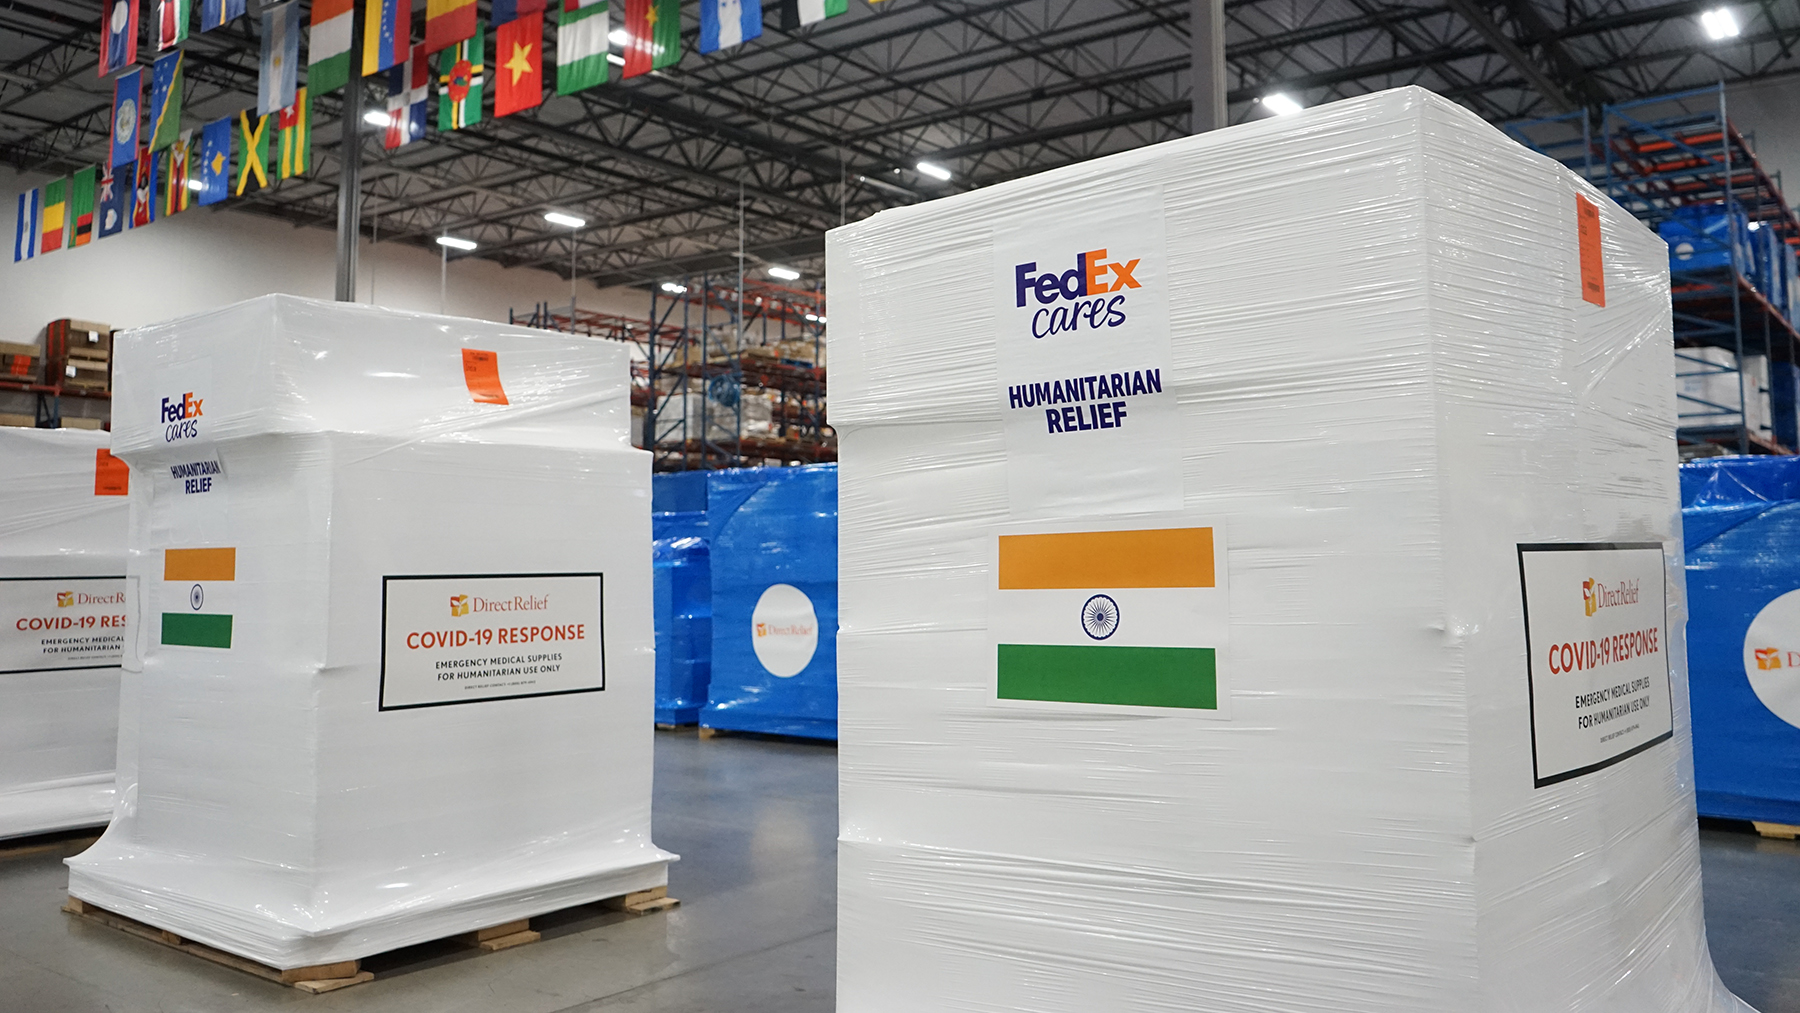 Medical aid is staged for departure to India in response to the country's Covid-19 surge. The shipment is being transported, free of charge, by FedEx. (Lara Cooper/Direct Relief)